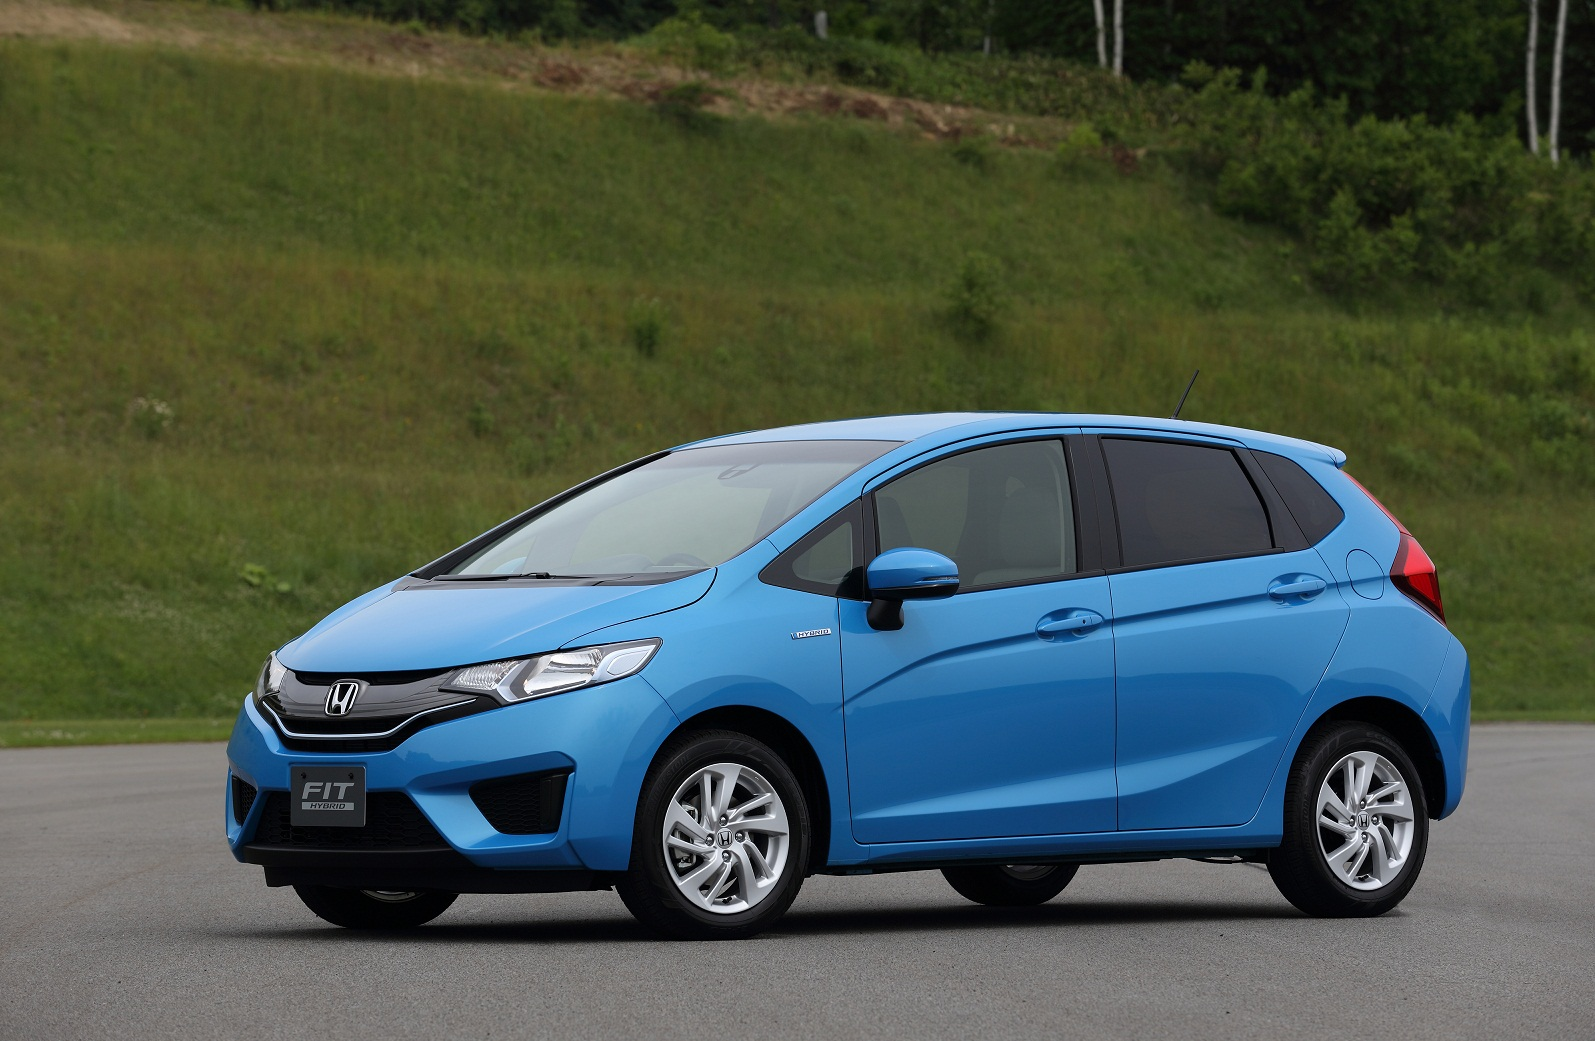 All-New 2015 Honda Fit Appears, Hybrid Model Too (Not For U.S., Though?)